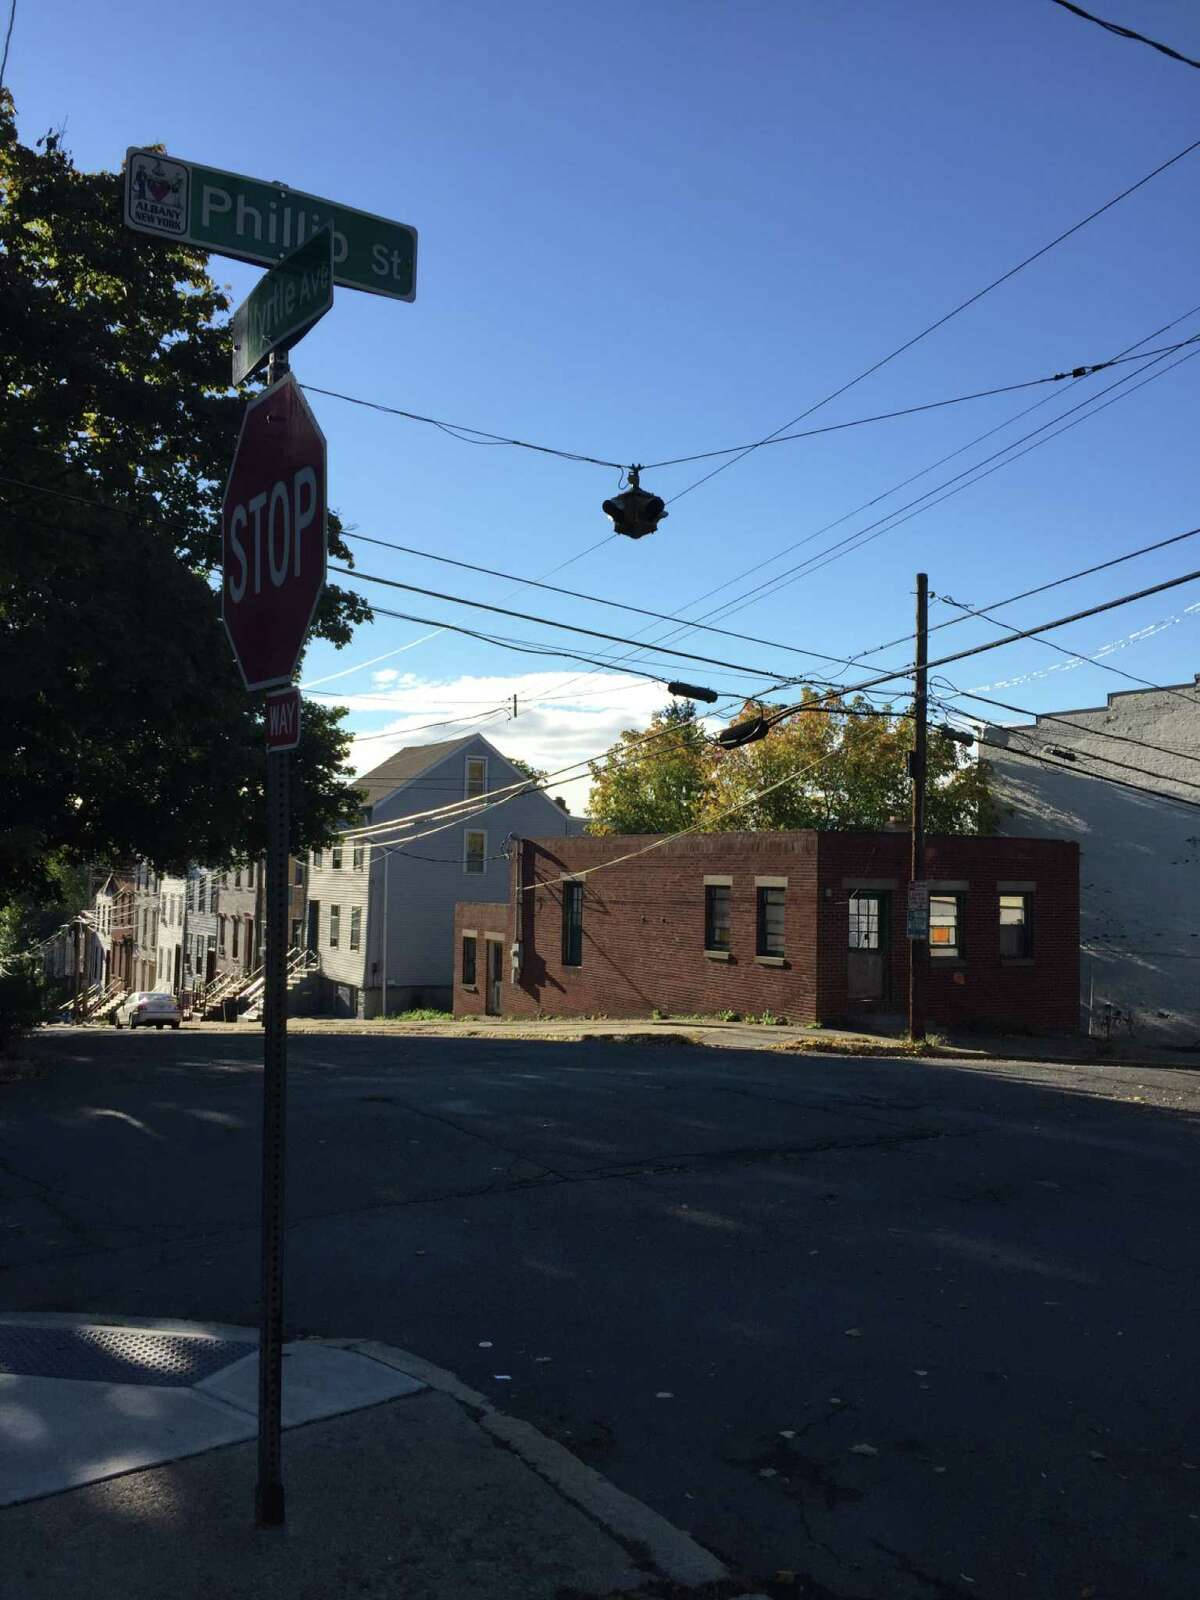 A building at the corner of Philip Street and Myrtle Avenue in Albany stands without a roof Tuesday, Oct. 16, 2018. The owners plan to rehabilitate the building and turn it into a single-family home.